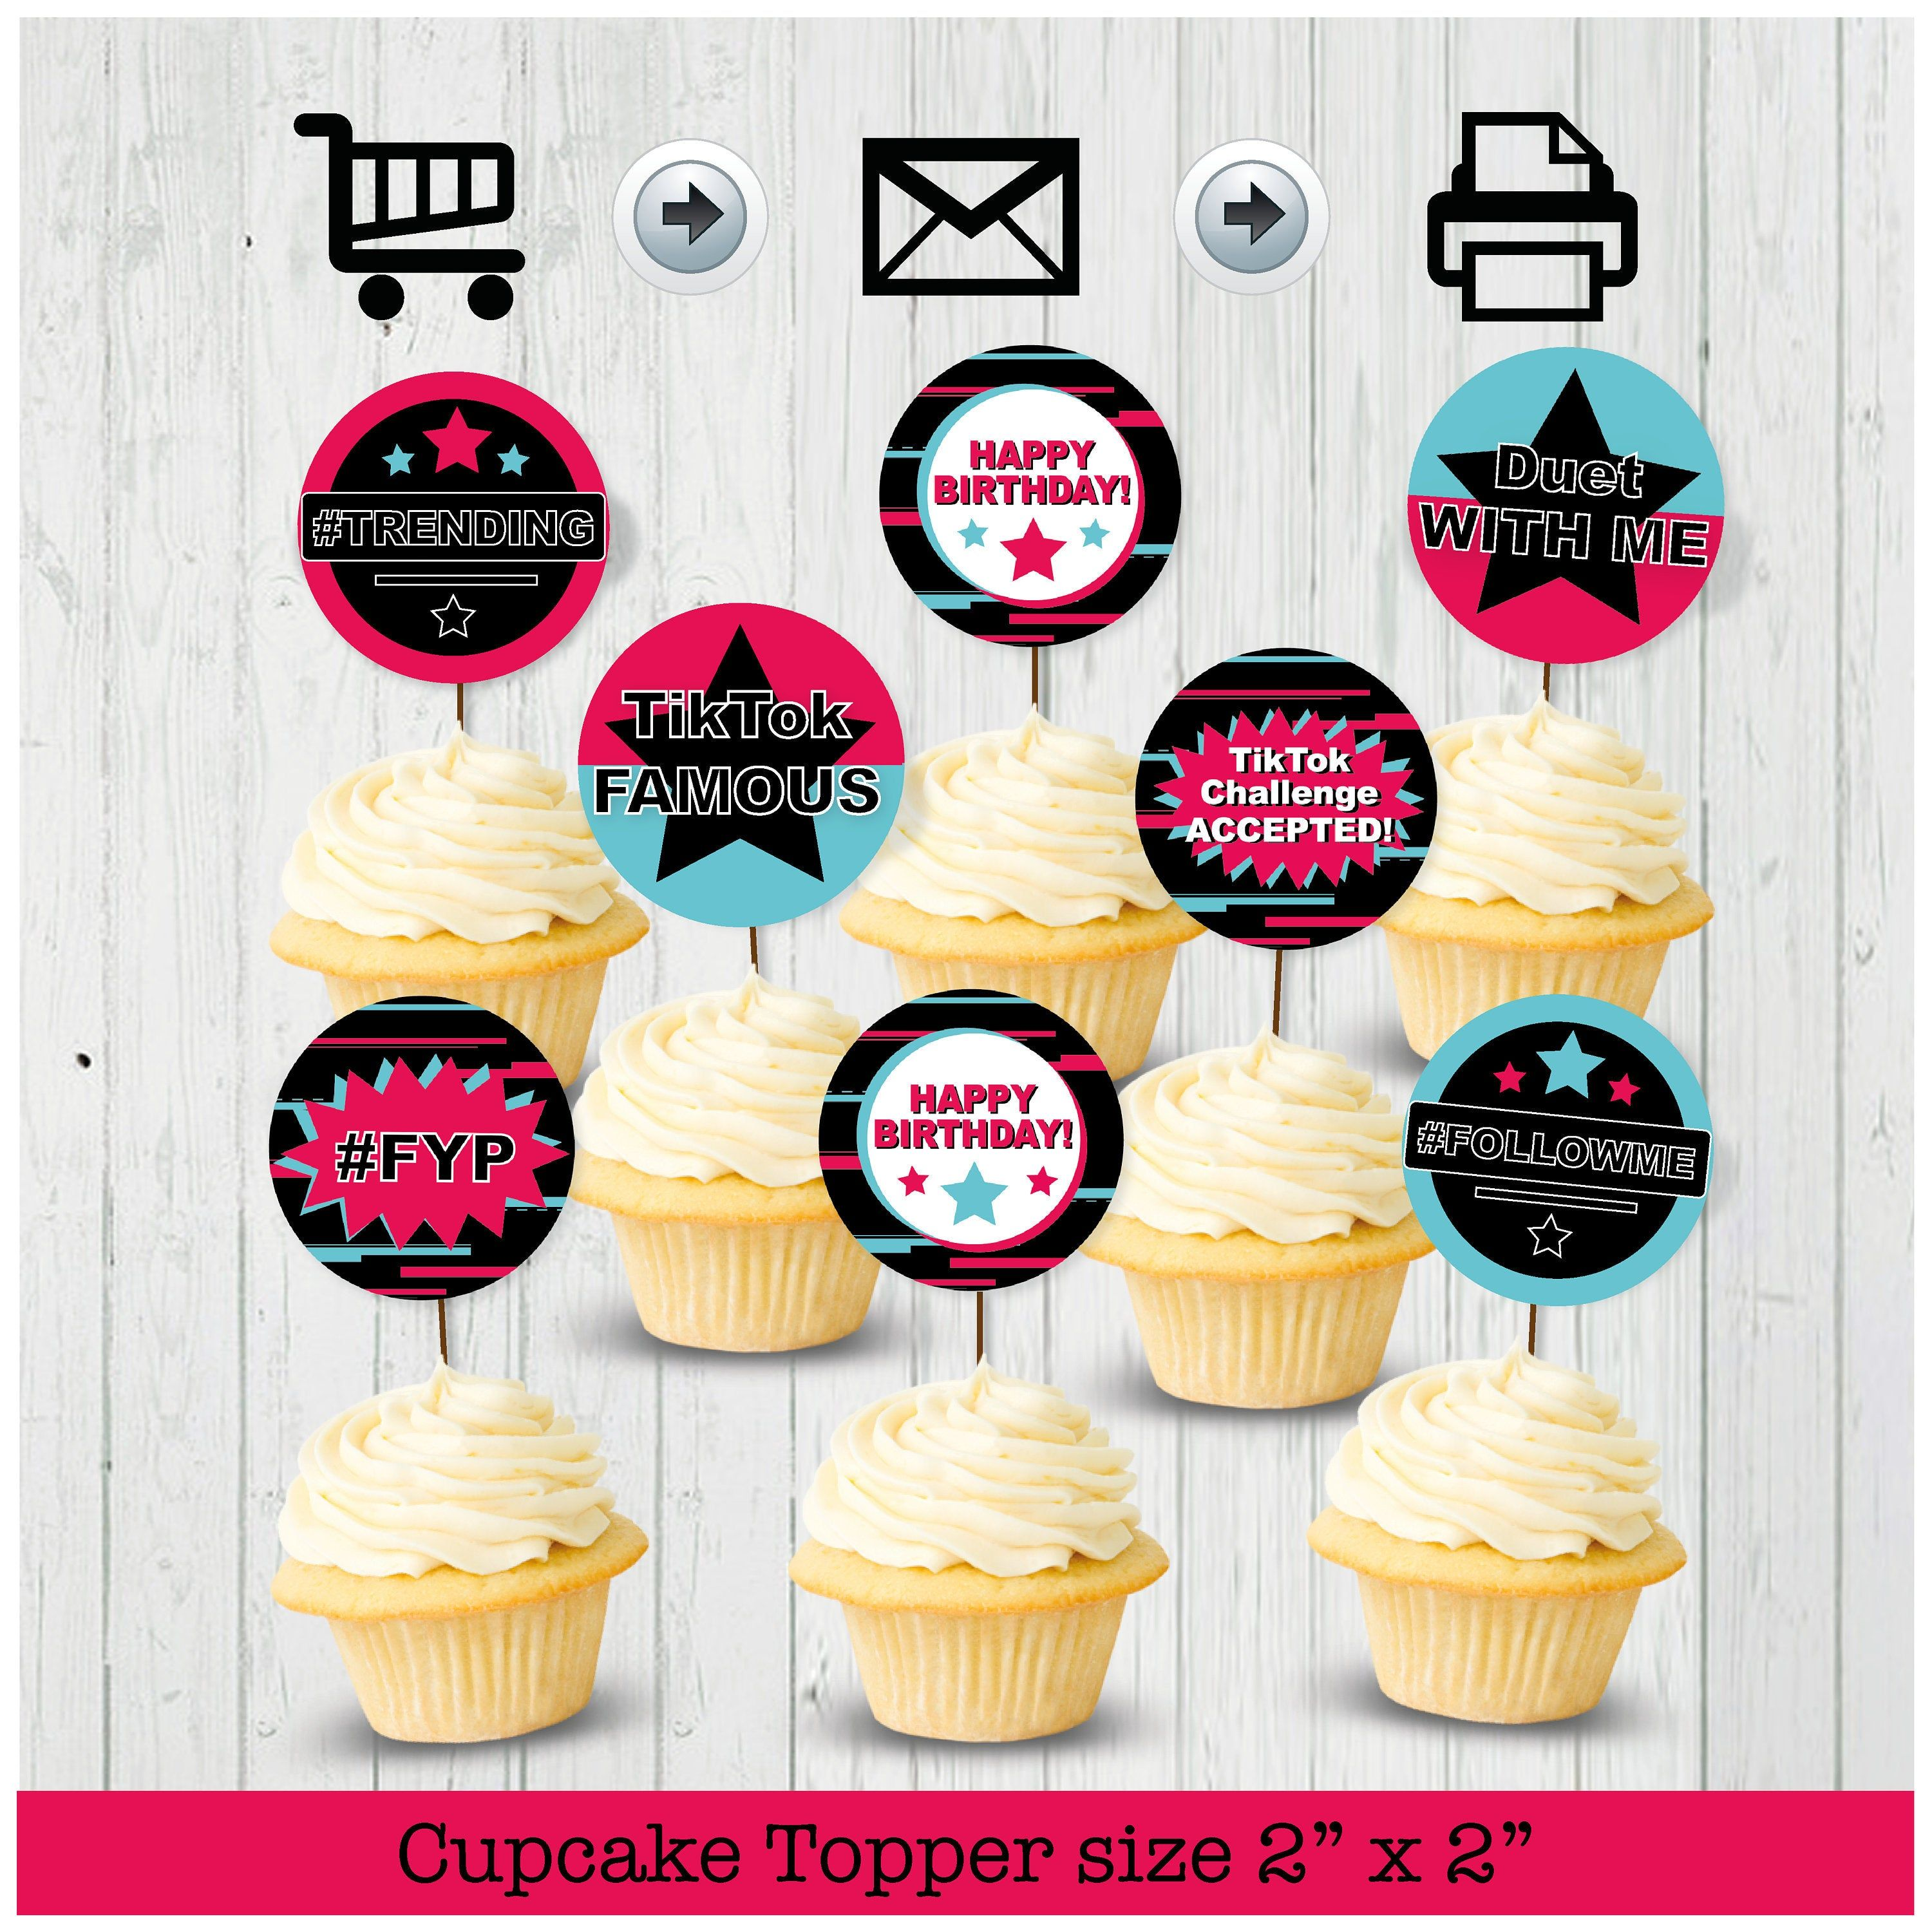 Tiktok Inspired Cupcake Toppers Party Printable Printable Etsy Cupcake Toppers Printable Party Printables Dance Diy